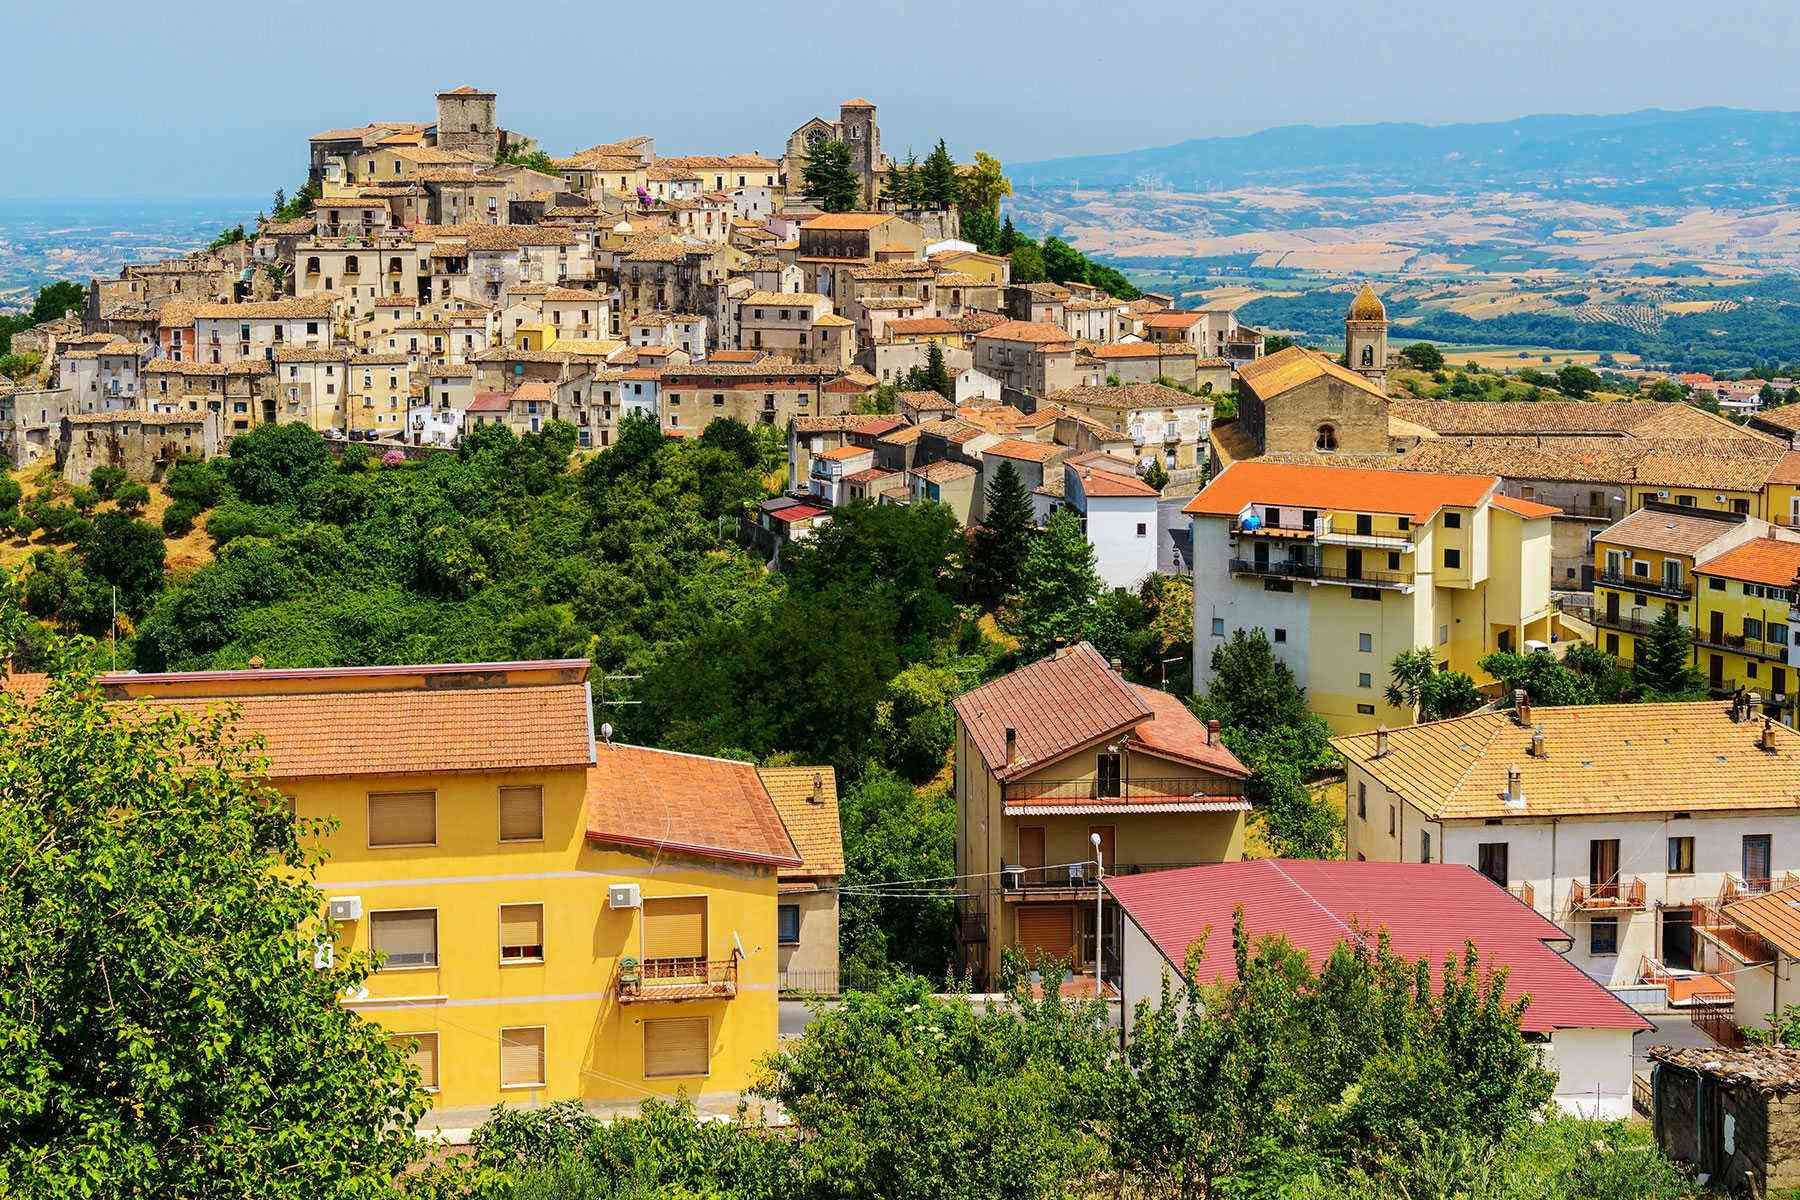 24 Stunning Medieval Mountaintop Villages in Italy – Fodors Travel Guide